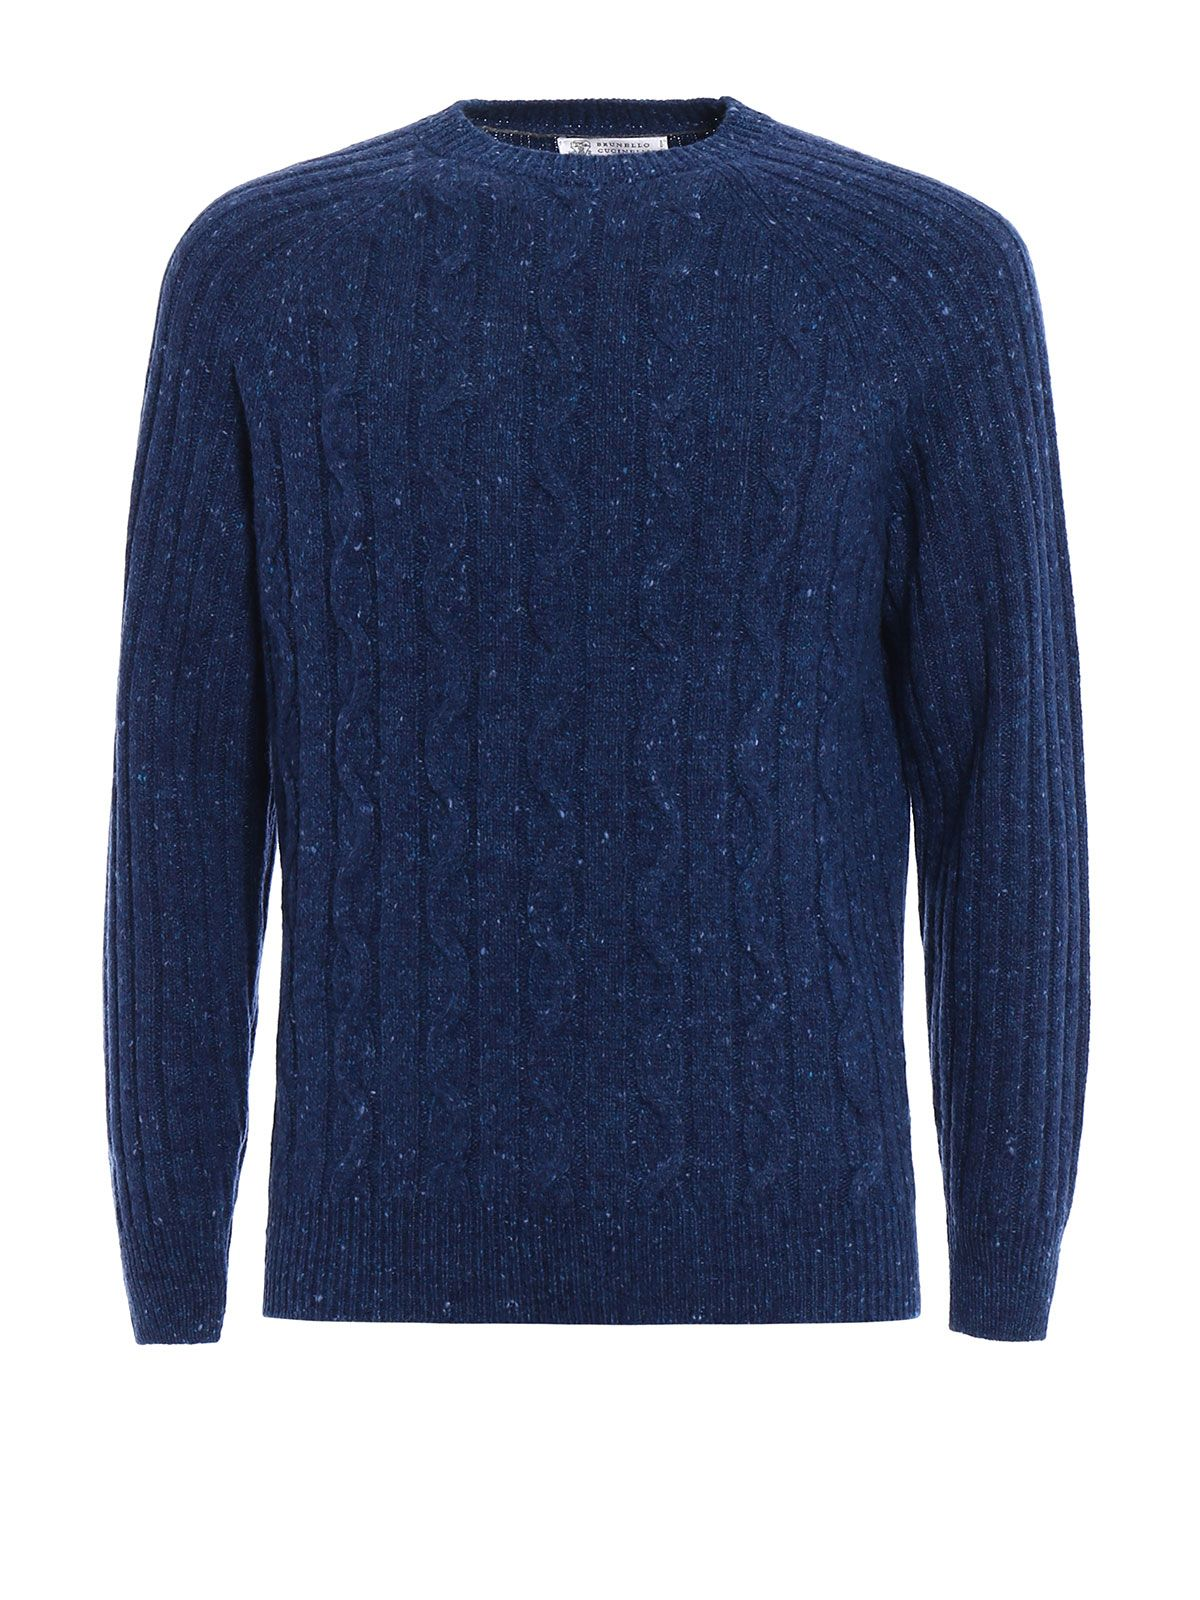 Twist And Rib Knitted Wool Sweater